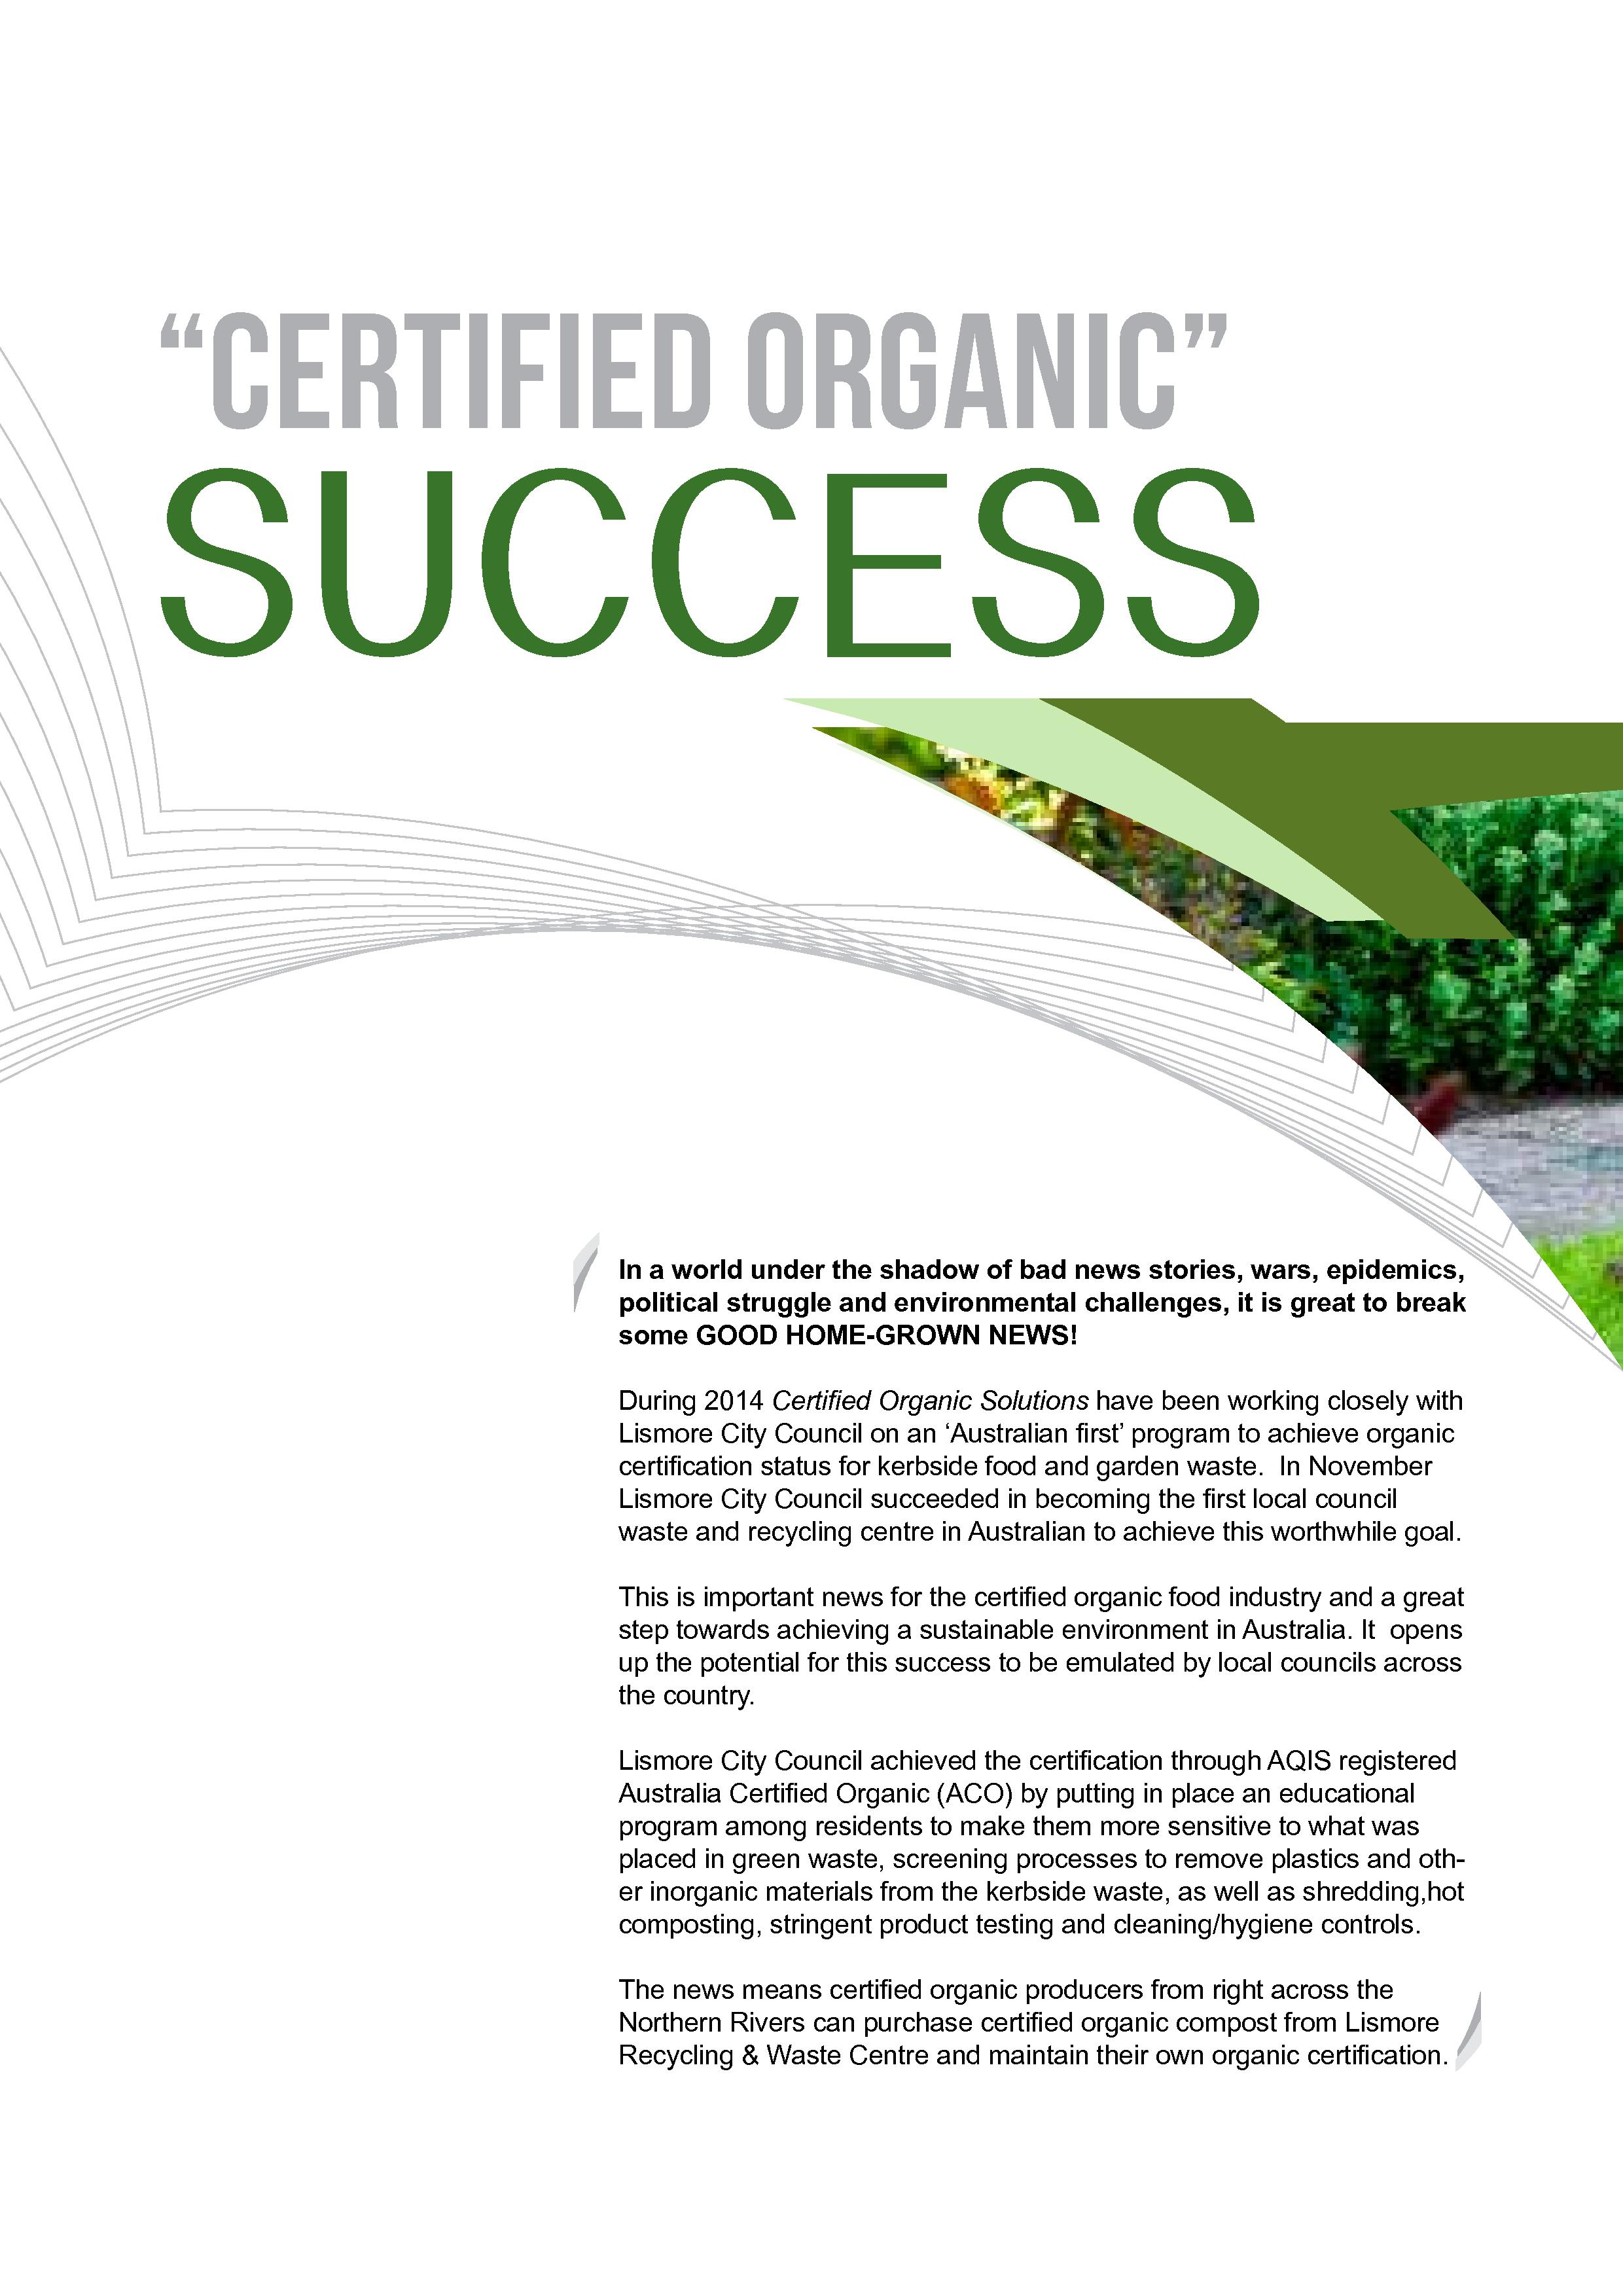 Certified Organic Solutions Kerbside Certified Green Waste 002